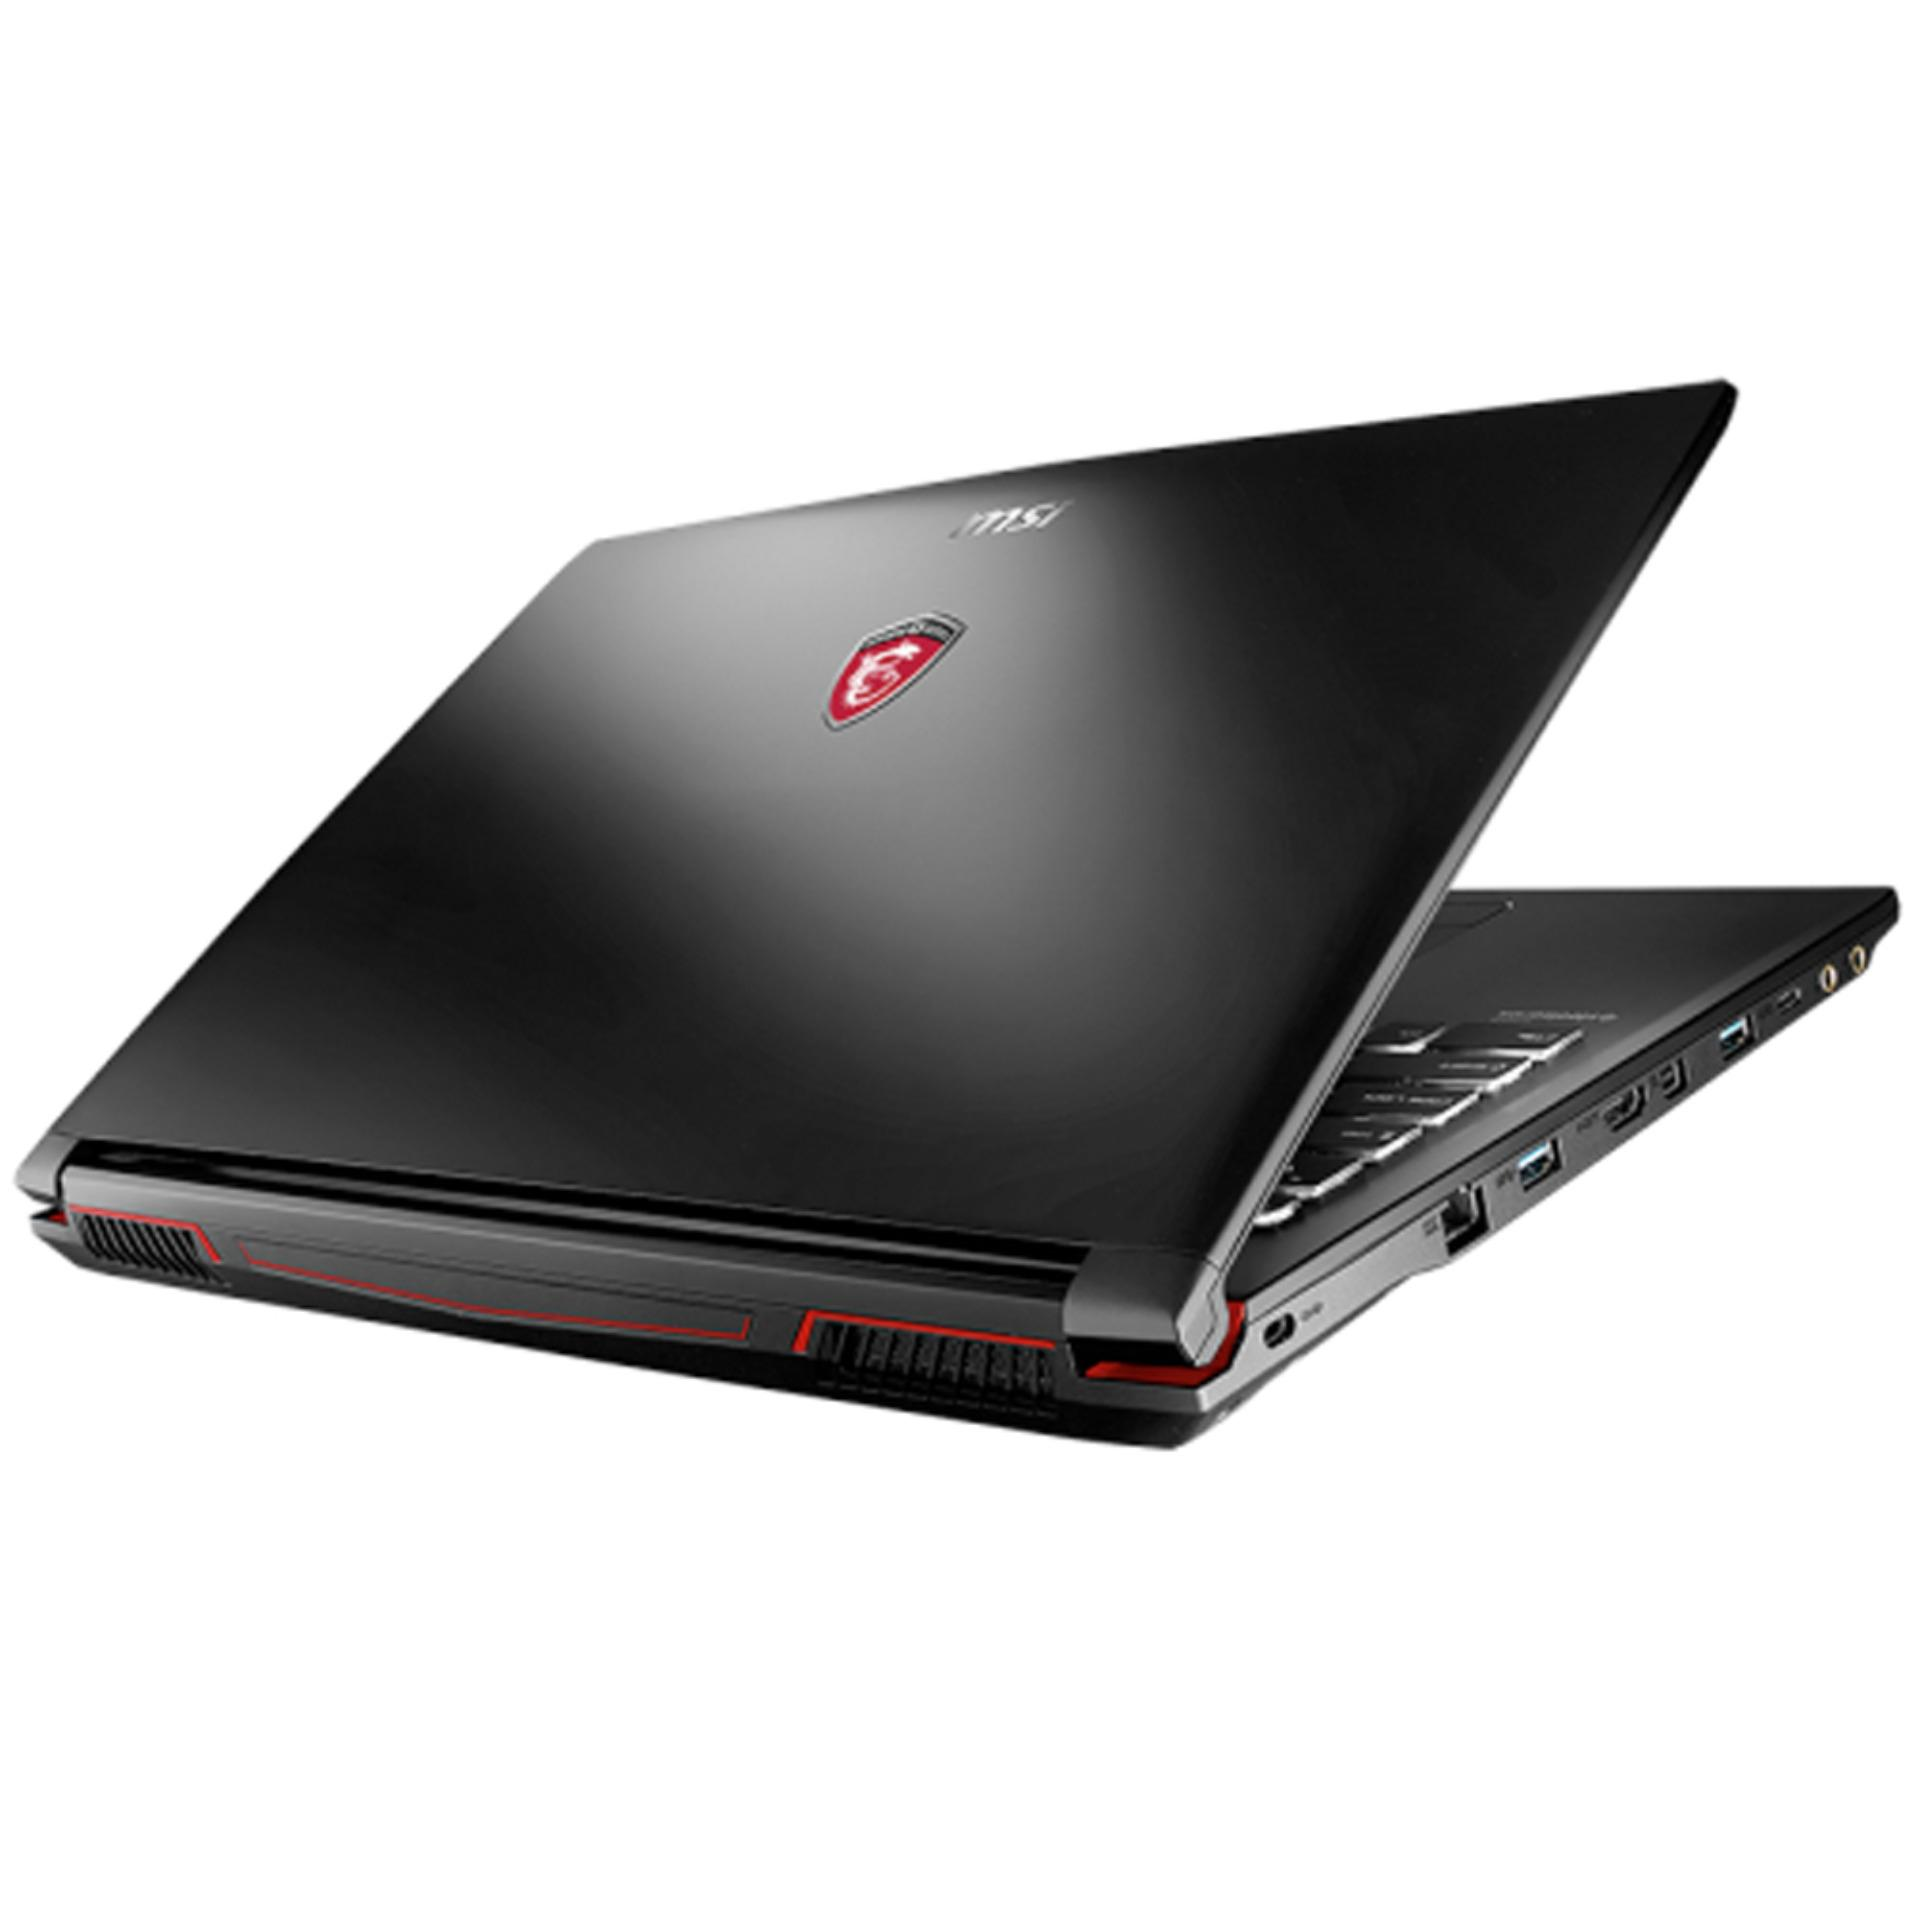 Lenovo IdeaPad Y700 (15ISK) - Intel Core i7 6700HQ - HDD 1TB+SSD. Source · MSI GP62MVR-7RFX Leopard Pro - Intel Core i7-7700HQ -